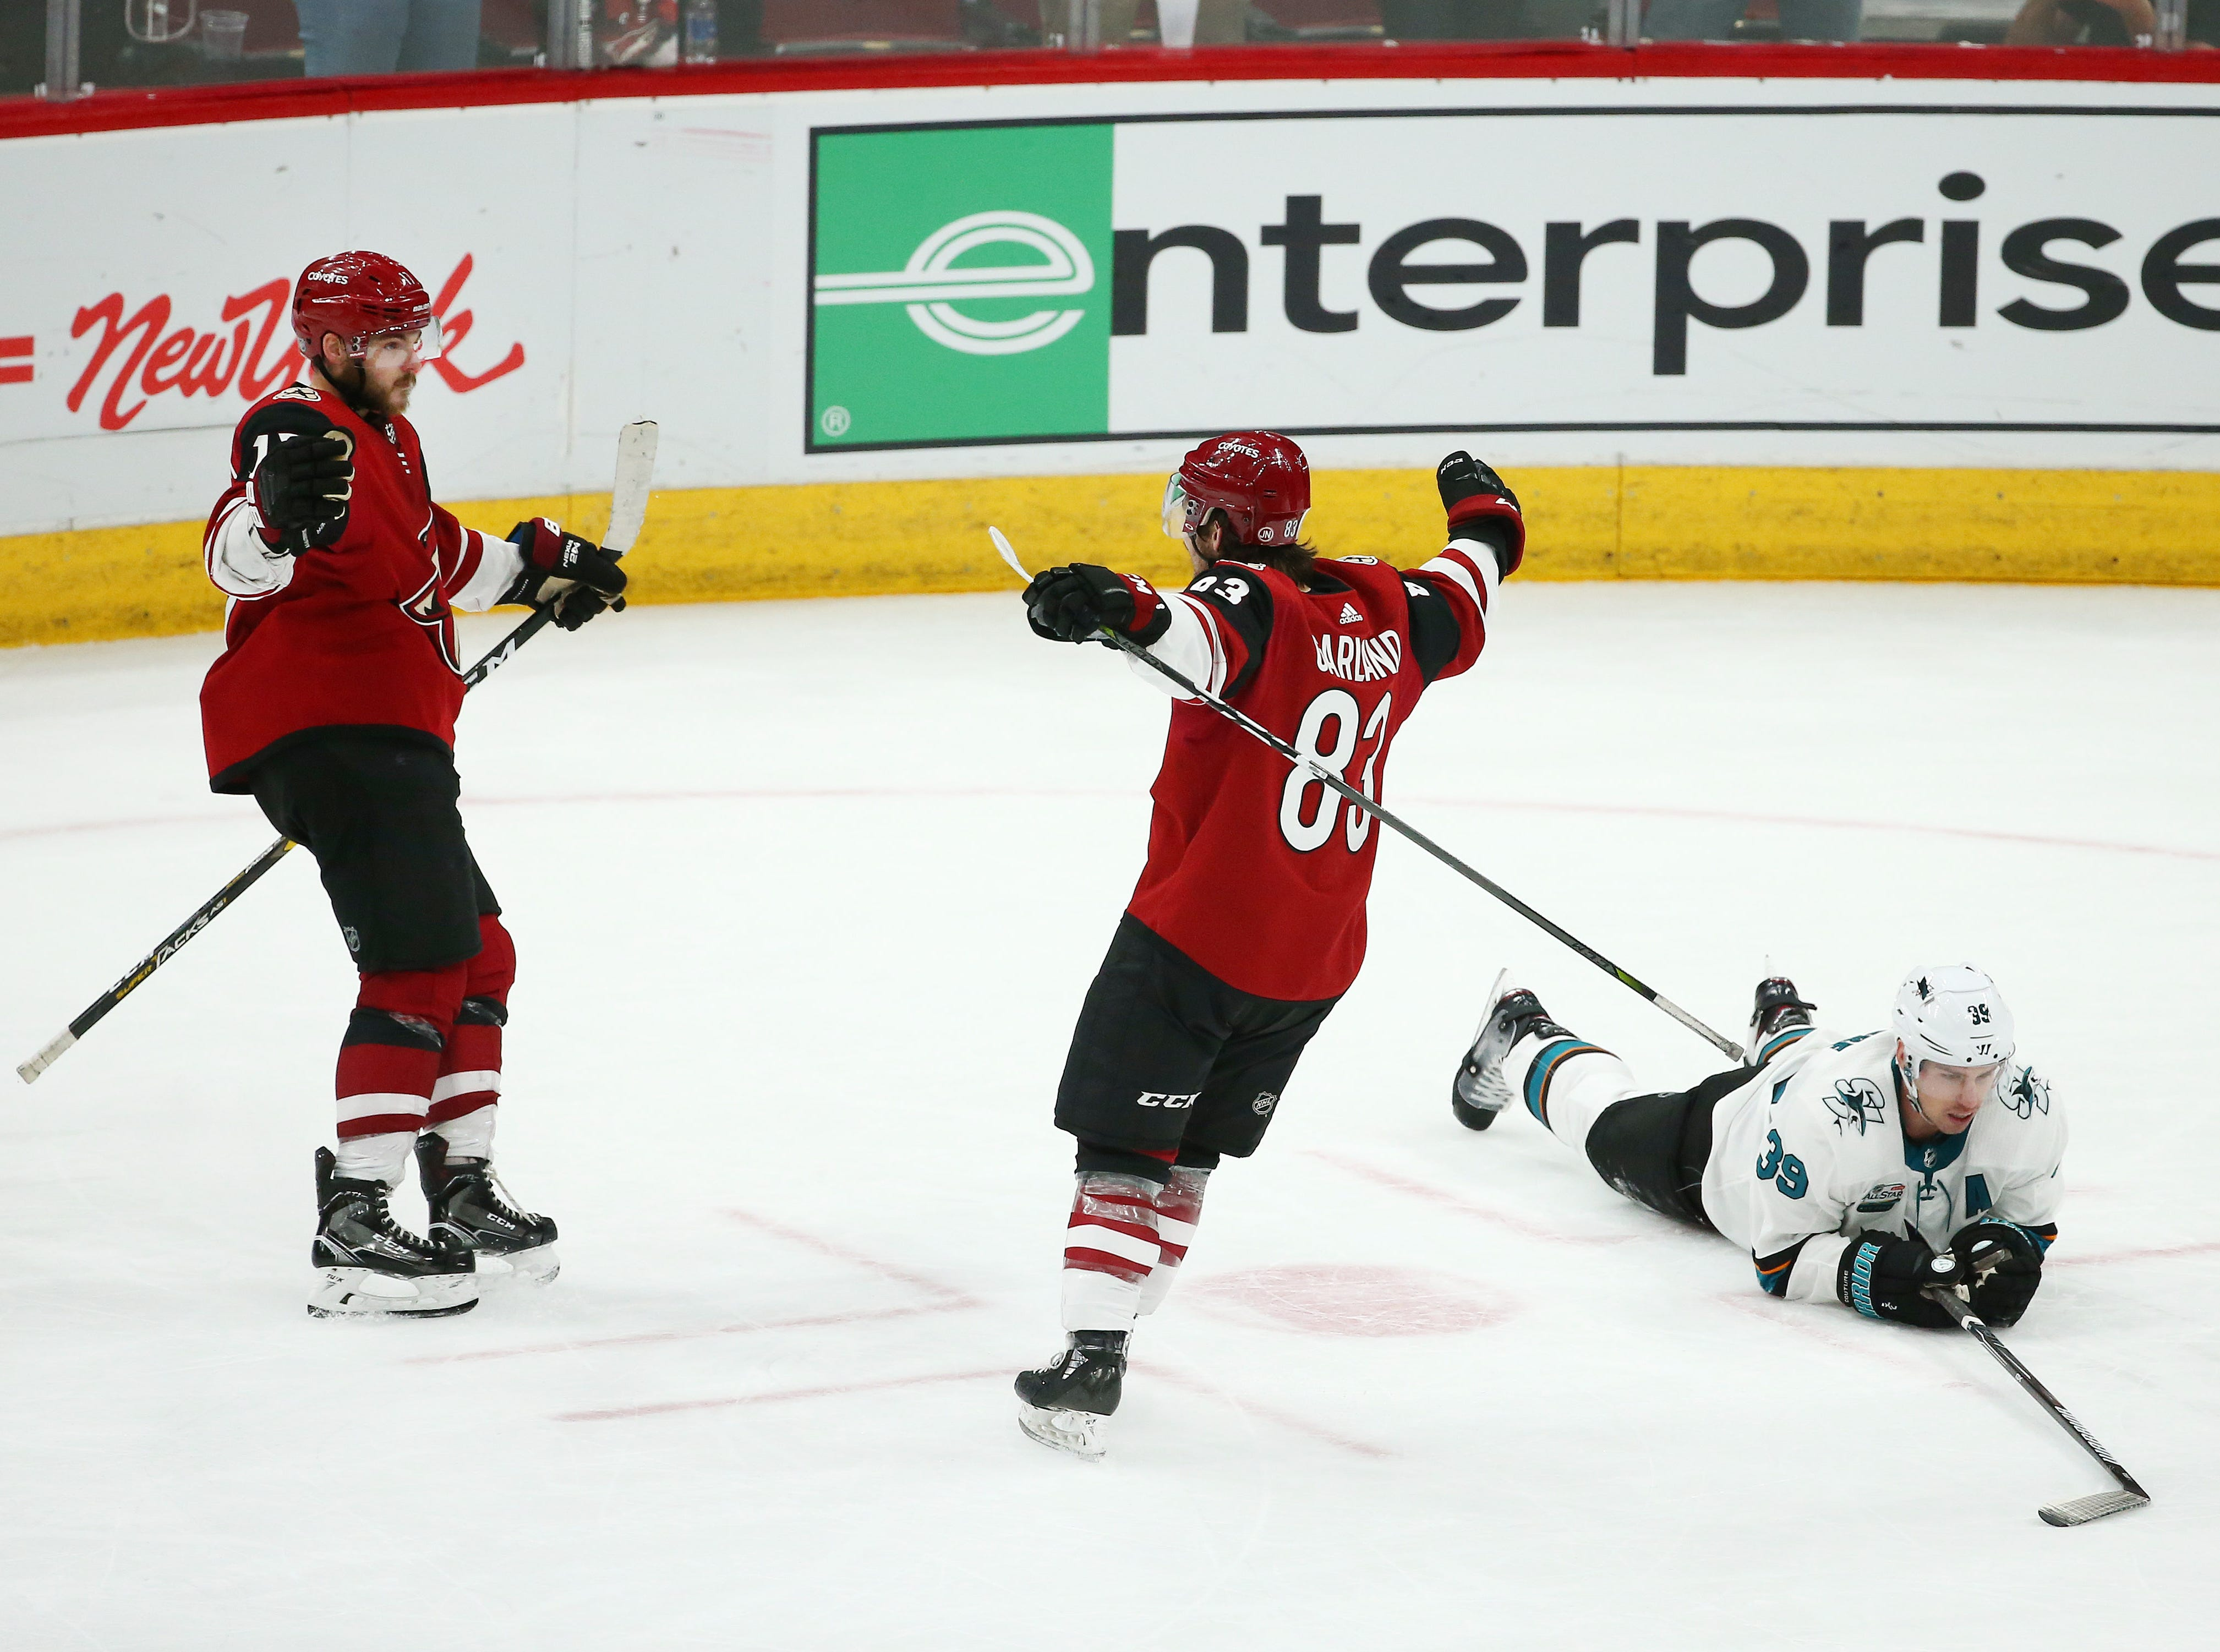 Arizona Coyotes Alex Galchenyuk (left) scores a goal against the San Jose Sharks in the third period on Jan. 16 at Gila River Arena.